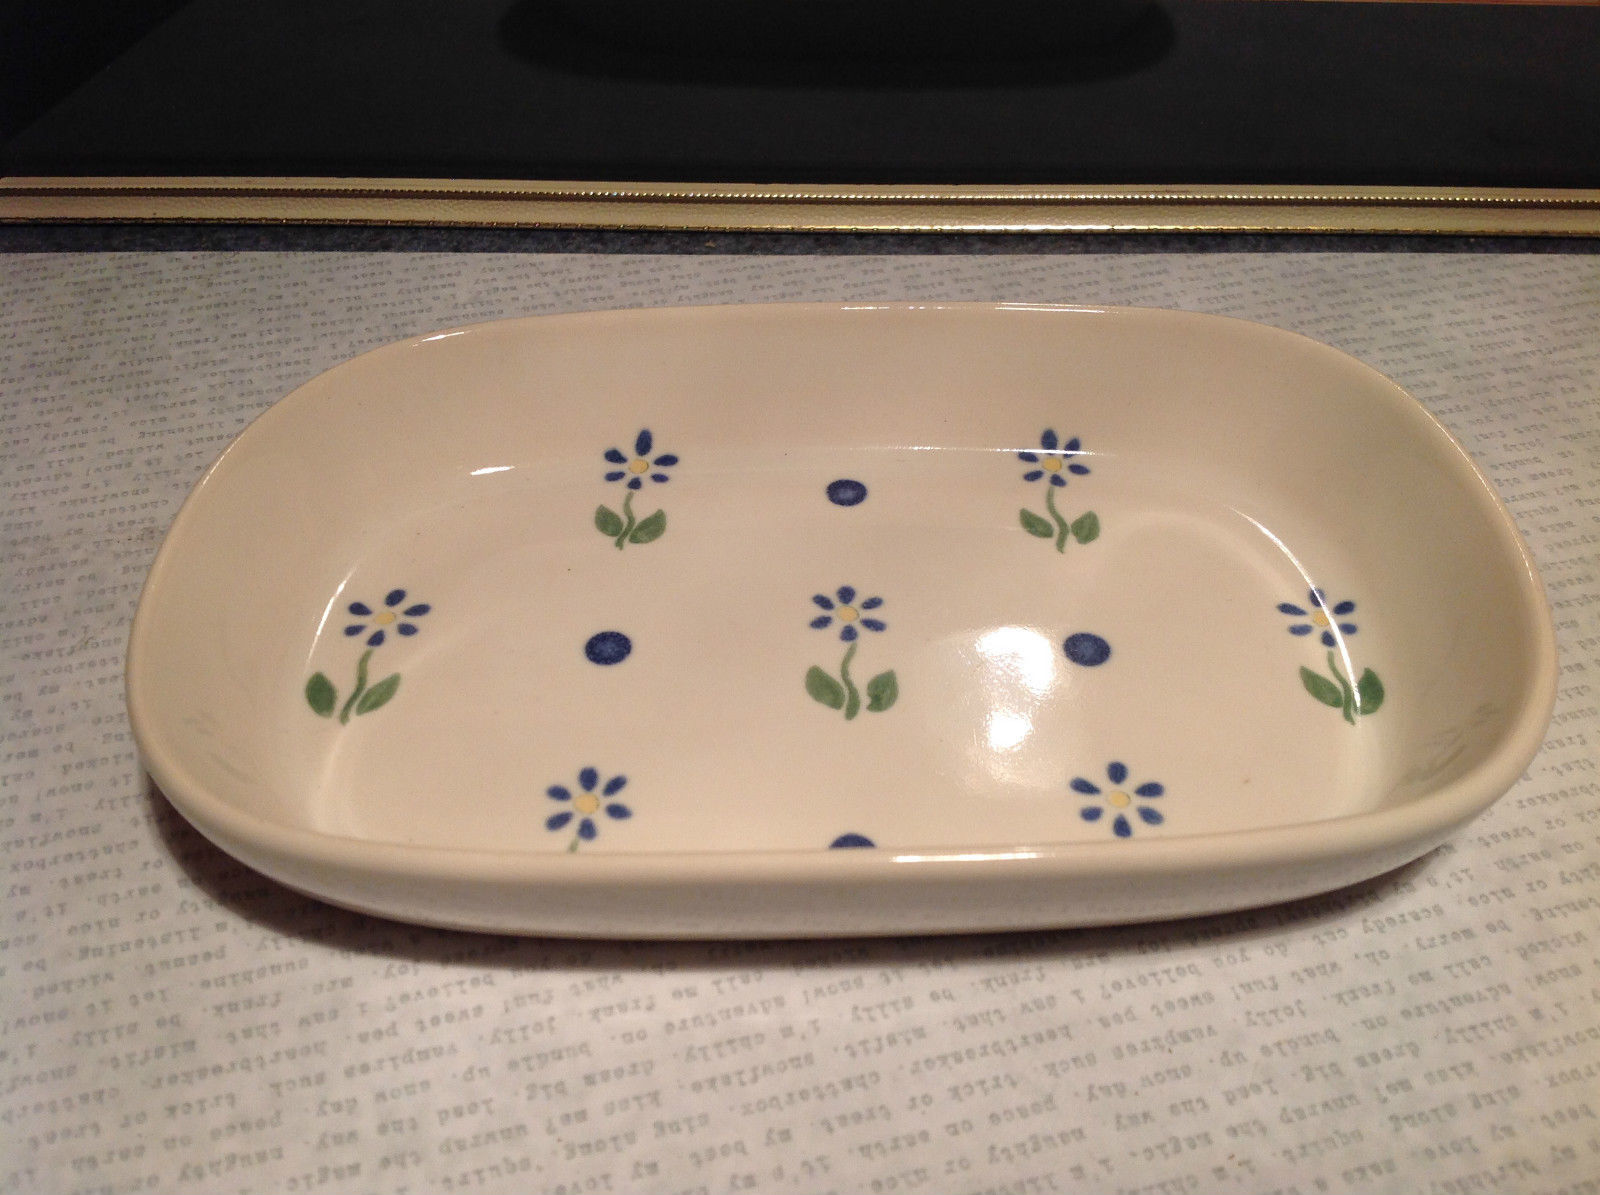 Pfaltzgraff Ceramic Serving Bowl with Flowers Made in USA Very Nice